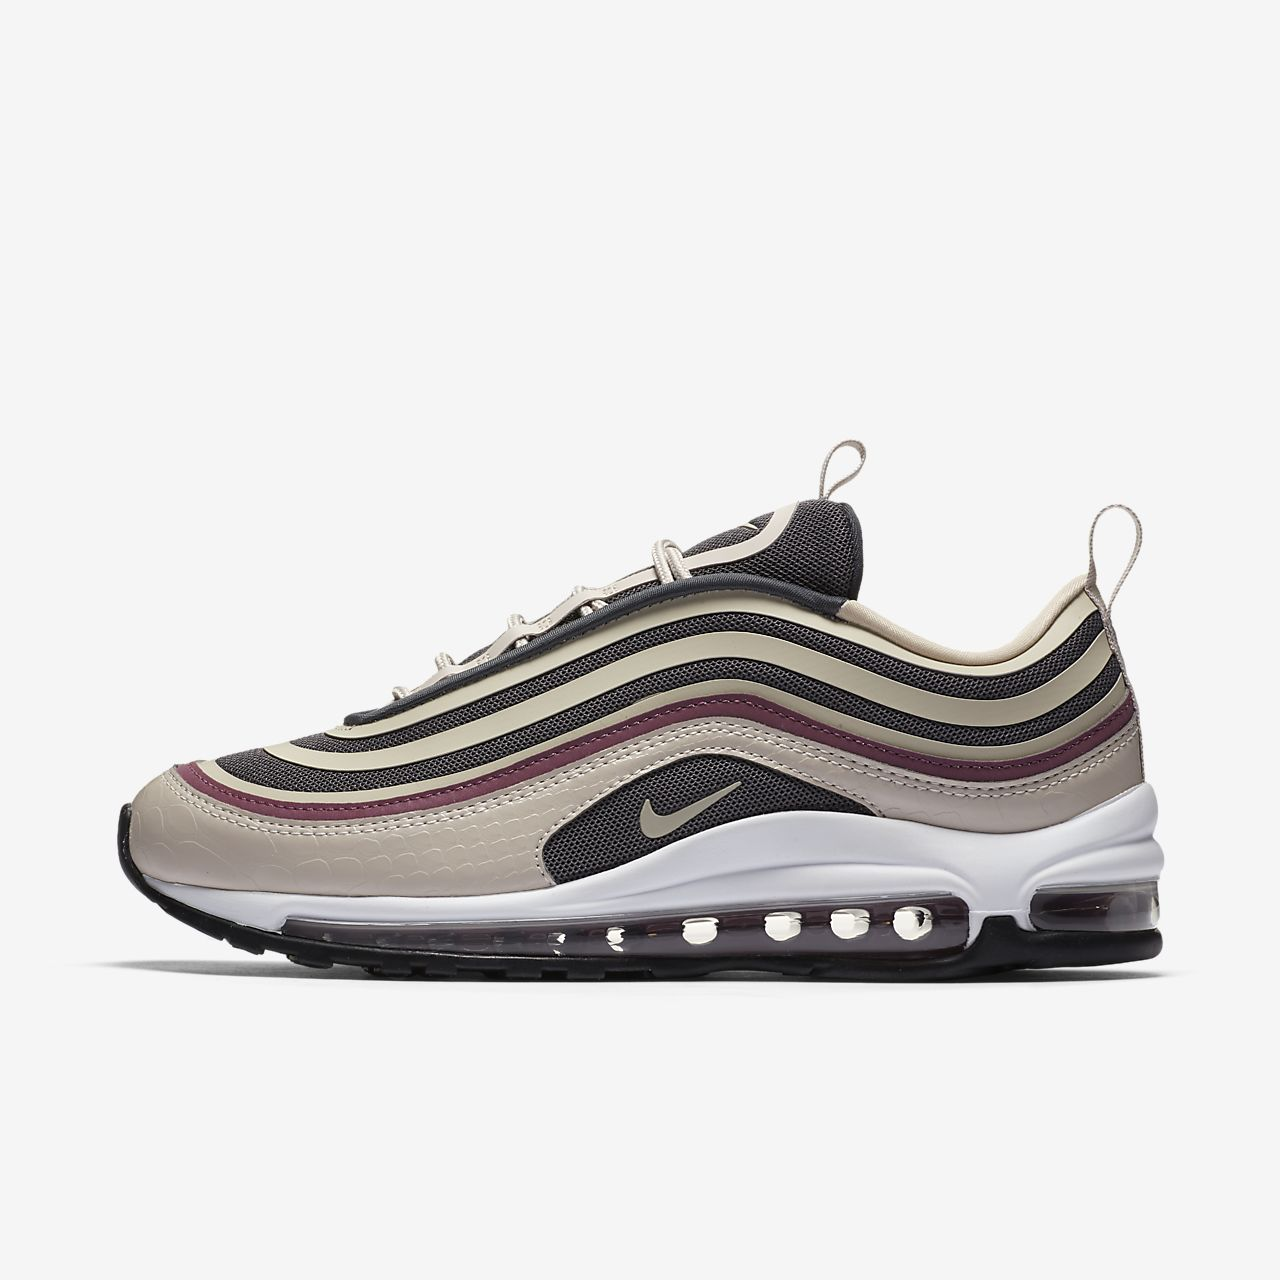 ... Nike Air Max 97 Ultra '17 SE Women's Shoe